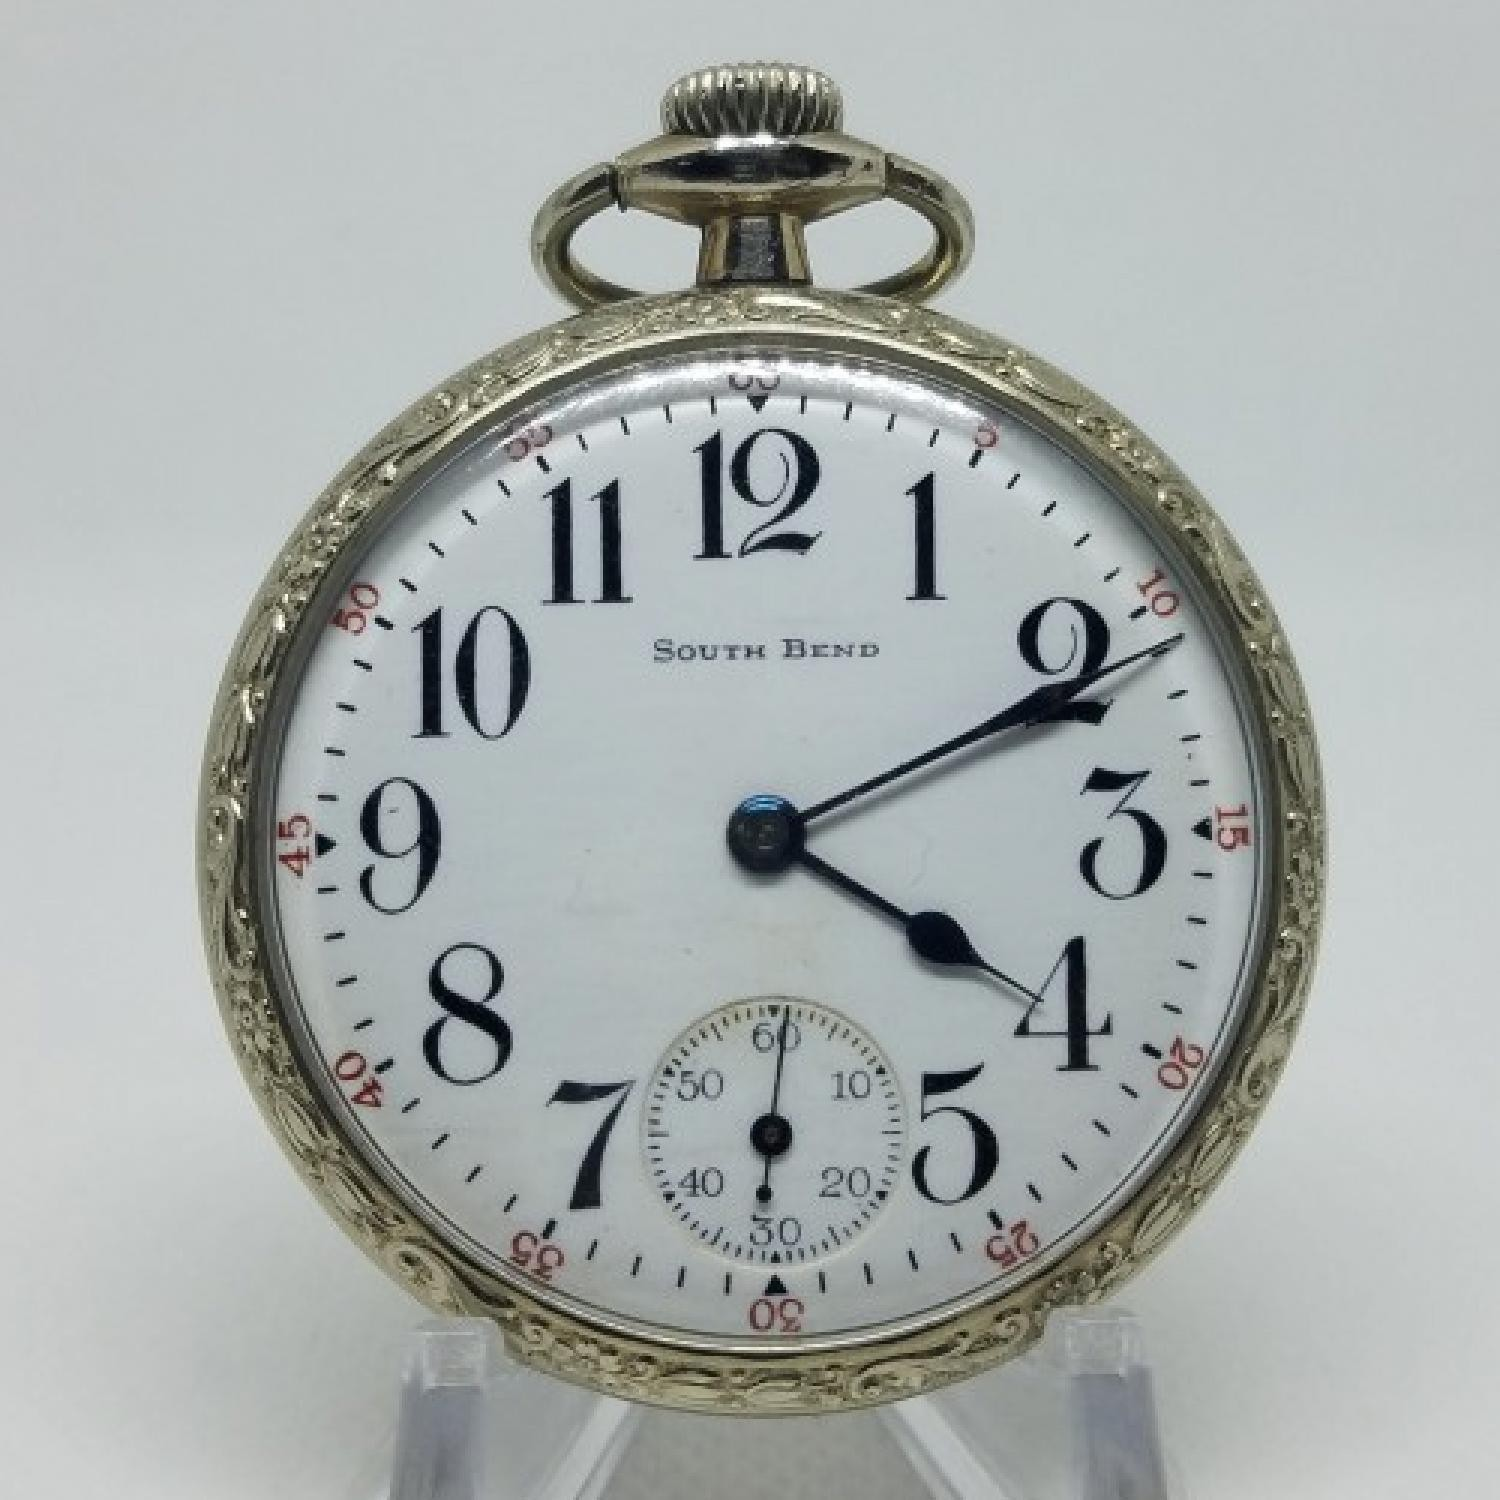 Image of South Bend 207 #1002839 Dial